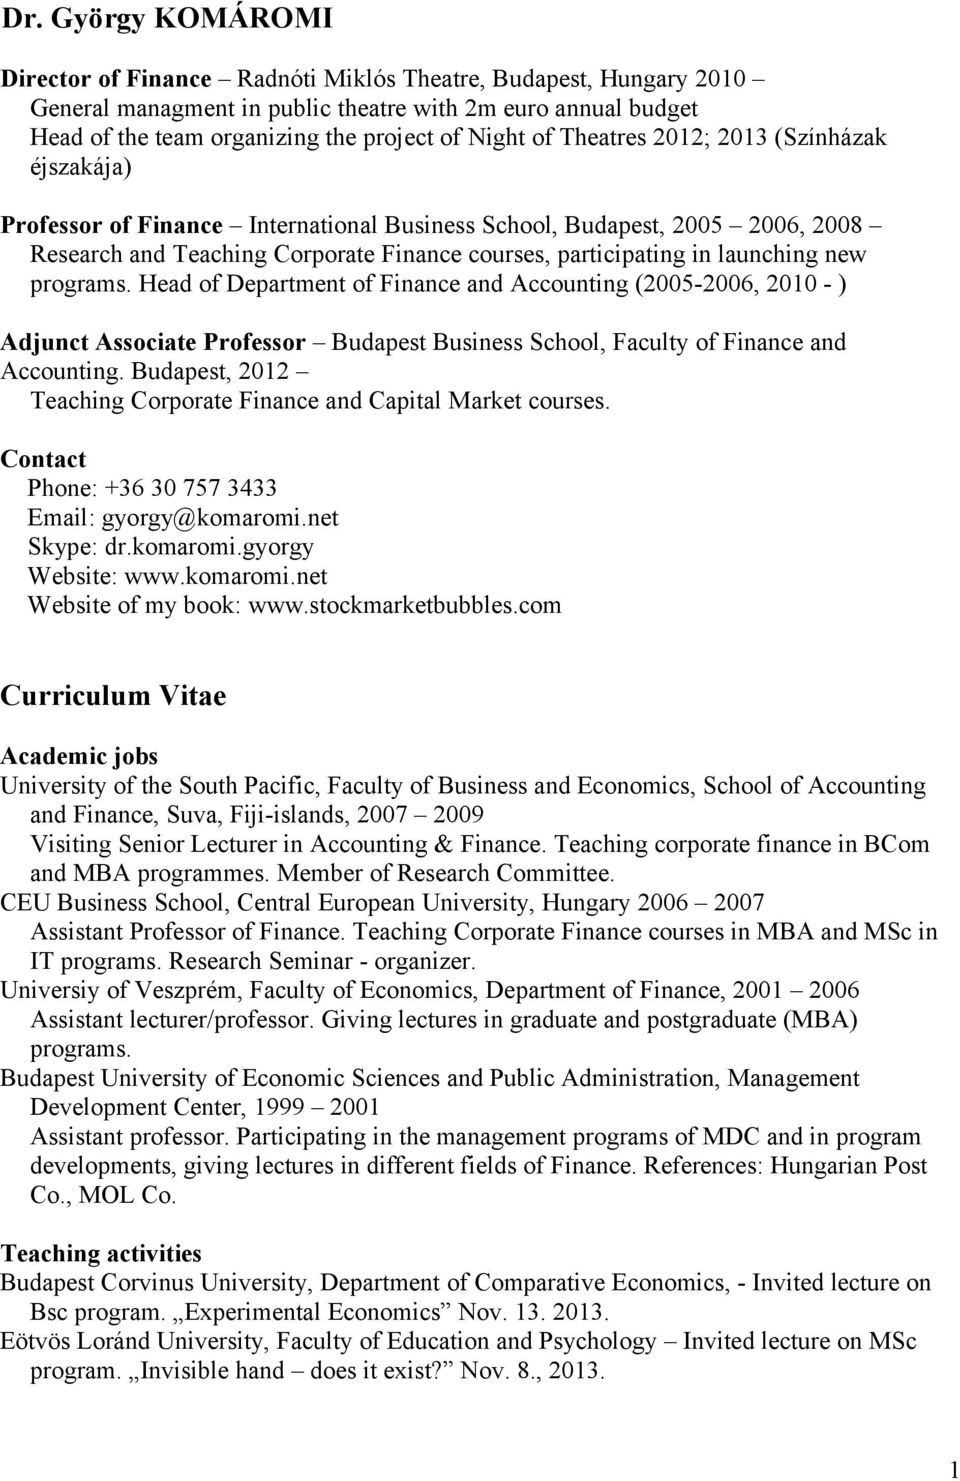 new programs. Head of Department of Finance and Accounting (2005-2006, 2010 - ) Adjunct Associate Professor Budapest Business School, Faculty of Finance and Accounting.